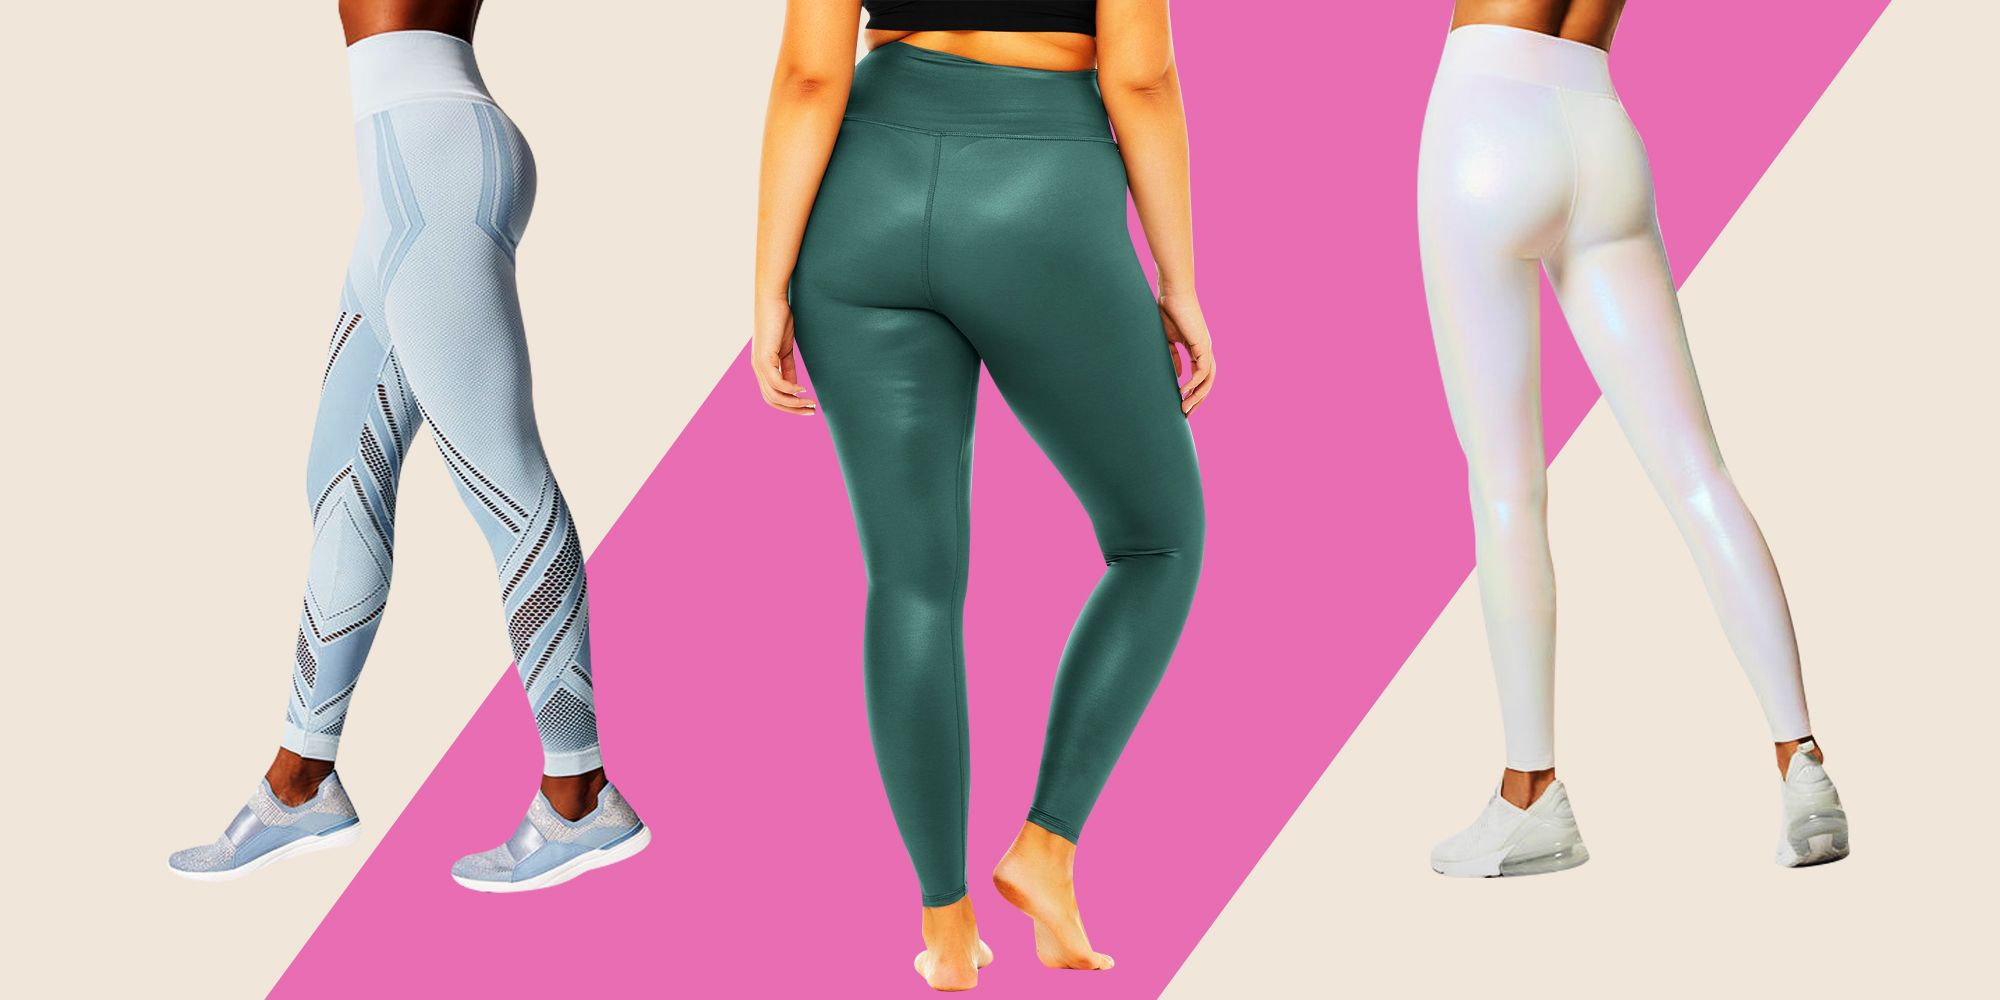 73fc1f1a1 You Need These 10 Insane Pairs of Butt-Sculpting Leggings